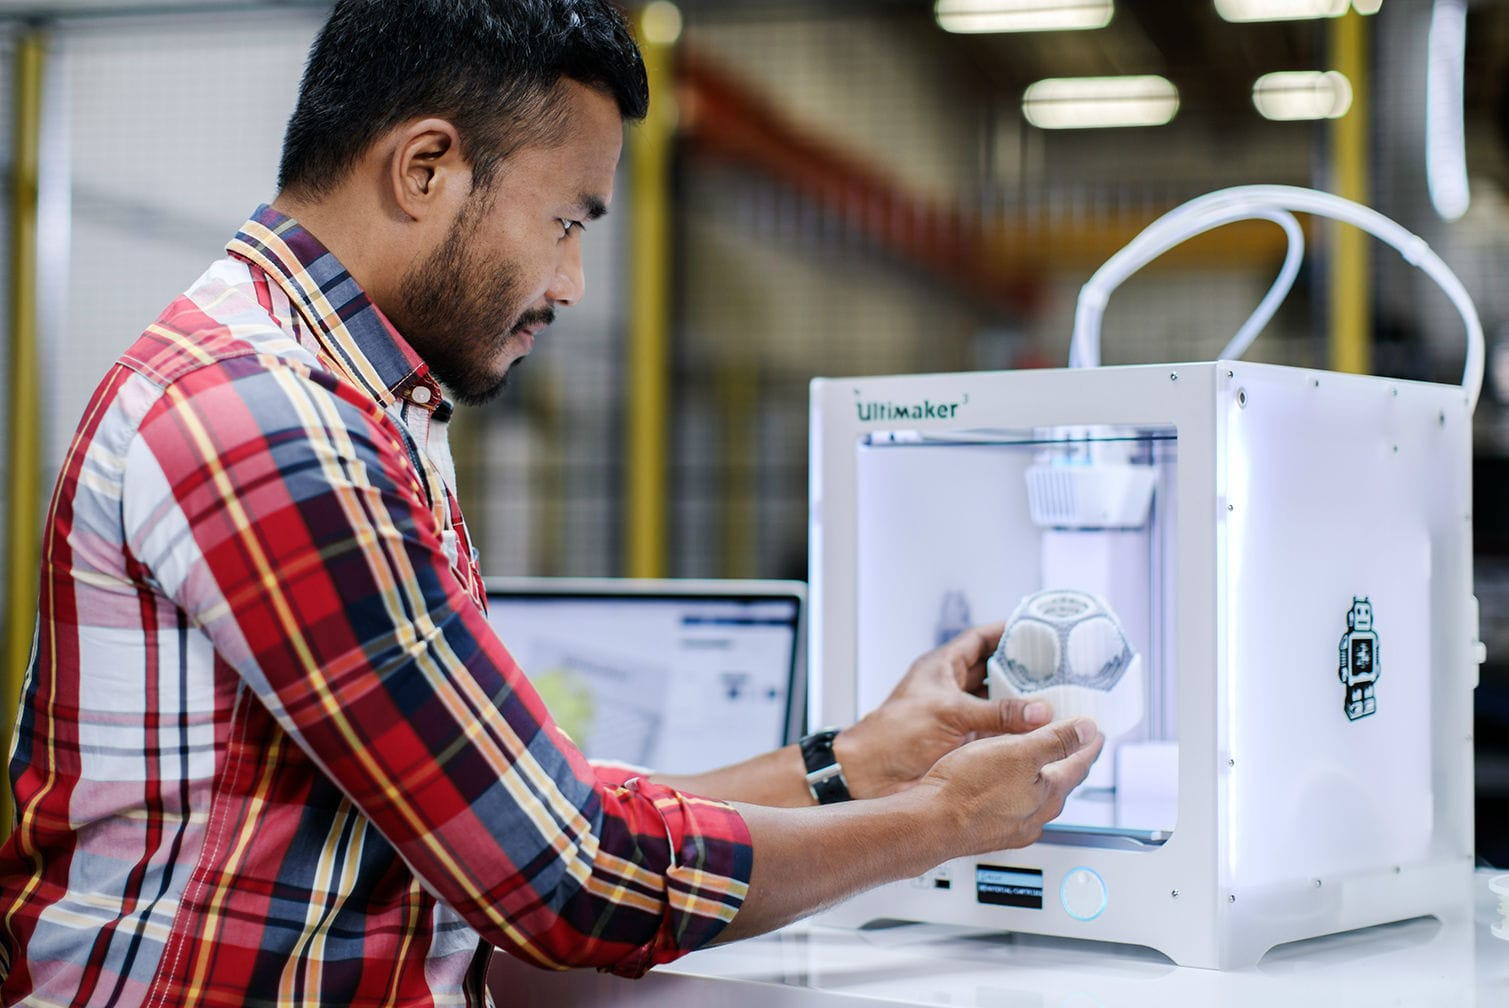 Does Ultimaker's first patent compromise their open source strategy?